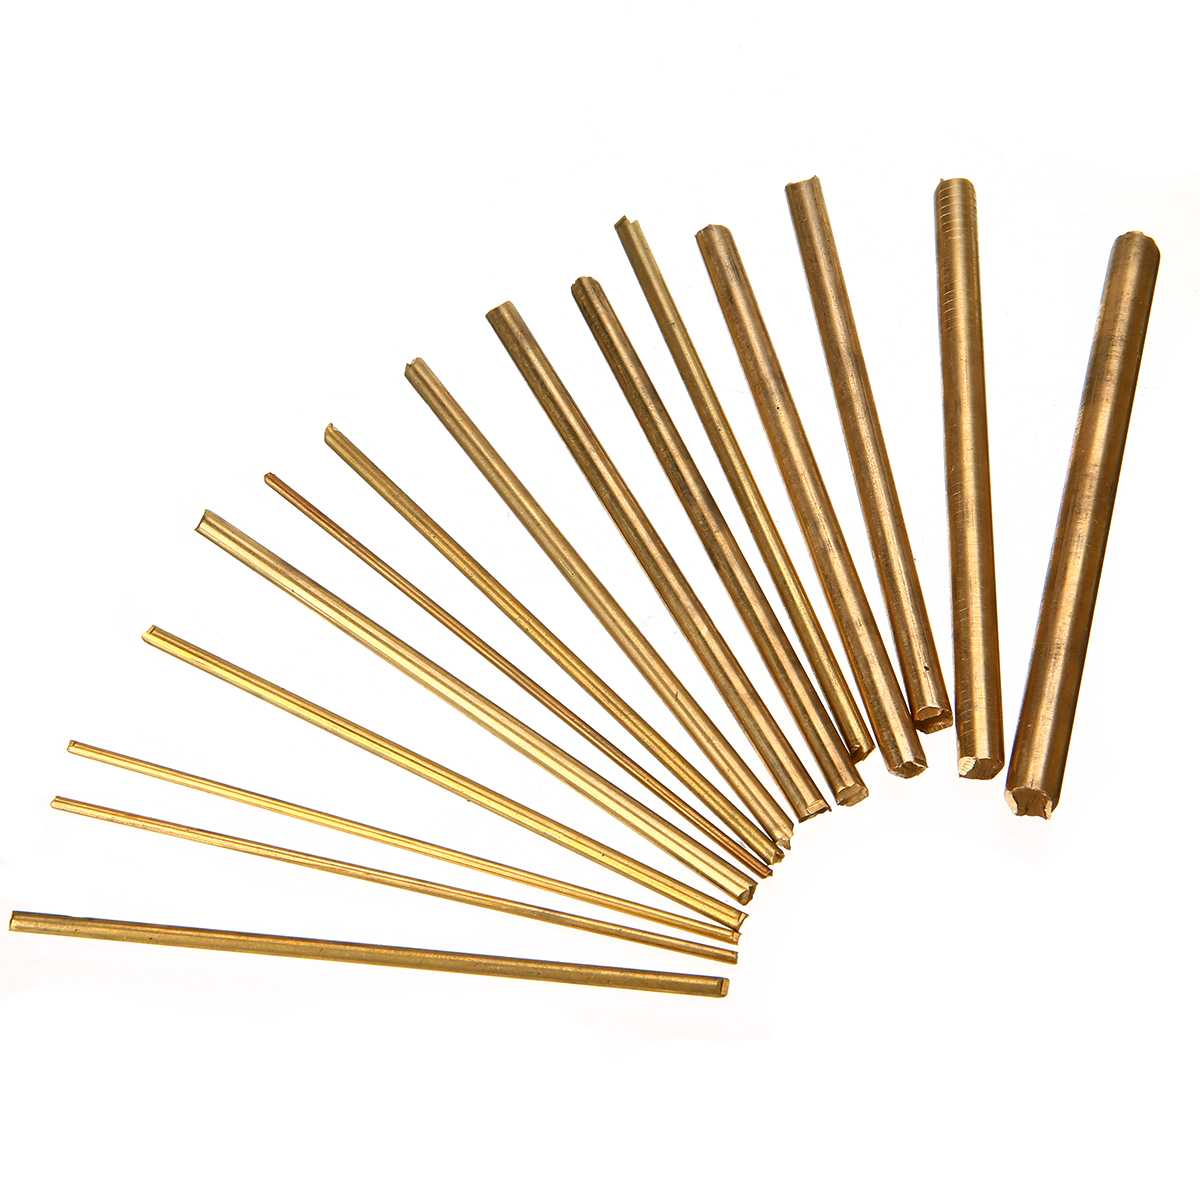 15pcs Copper Brass Round Rods Shafts Bar Watchmaker Lathe Watch Tool Craft Parts Mayitr For DIY Craft Making 100mm Length thumb brass maple blackwood convex bottom planes violin making woodworking tool luthiertools craft plane